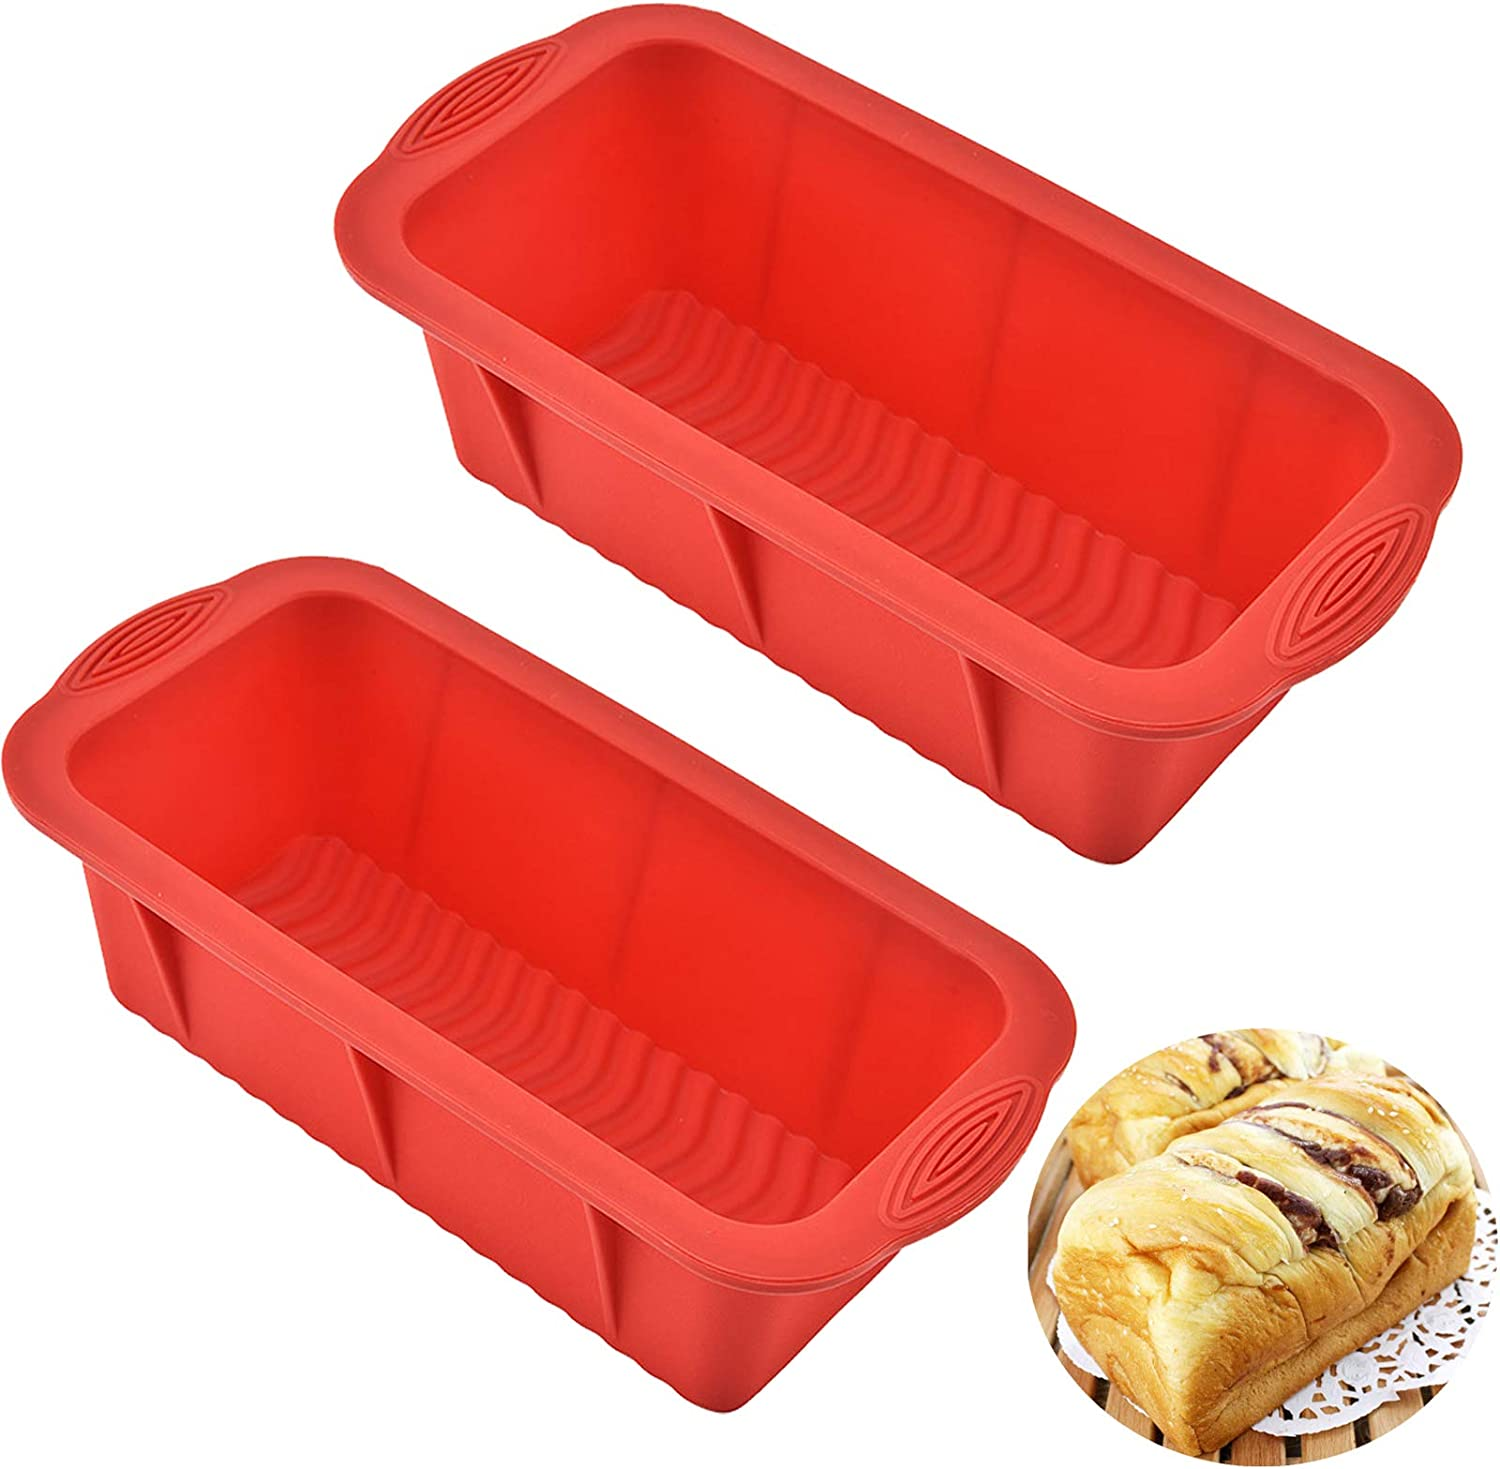 Silicone Loaf Pan for Baking Bread Toast Molds Value 2 Pcs Reusable Food Grade Bakeware Pans for Homemade Breads Cakes (2 Pack & Red)